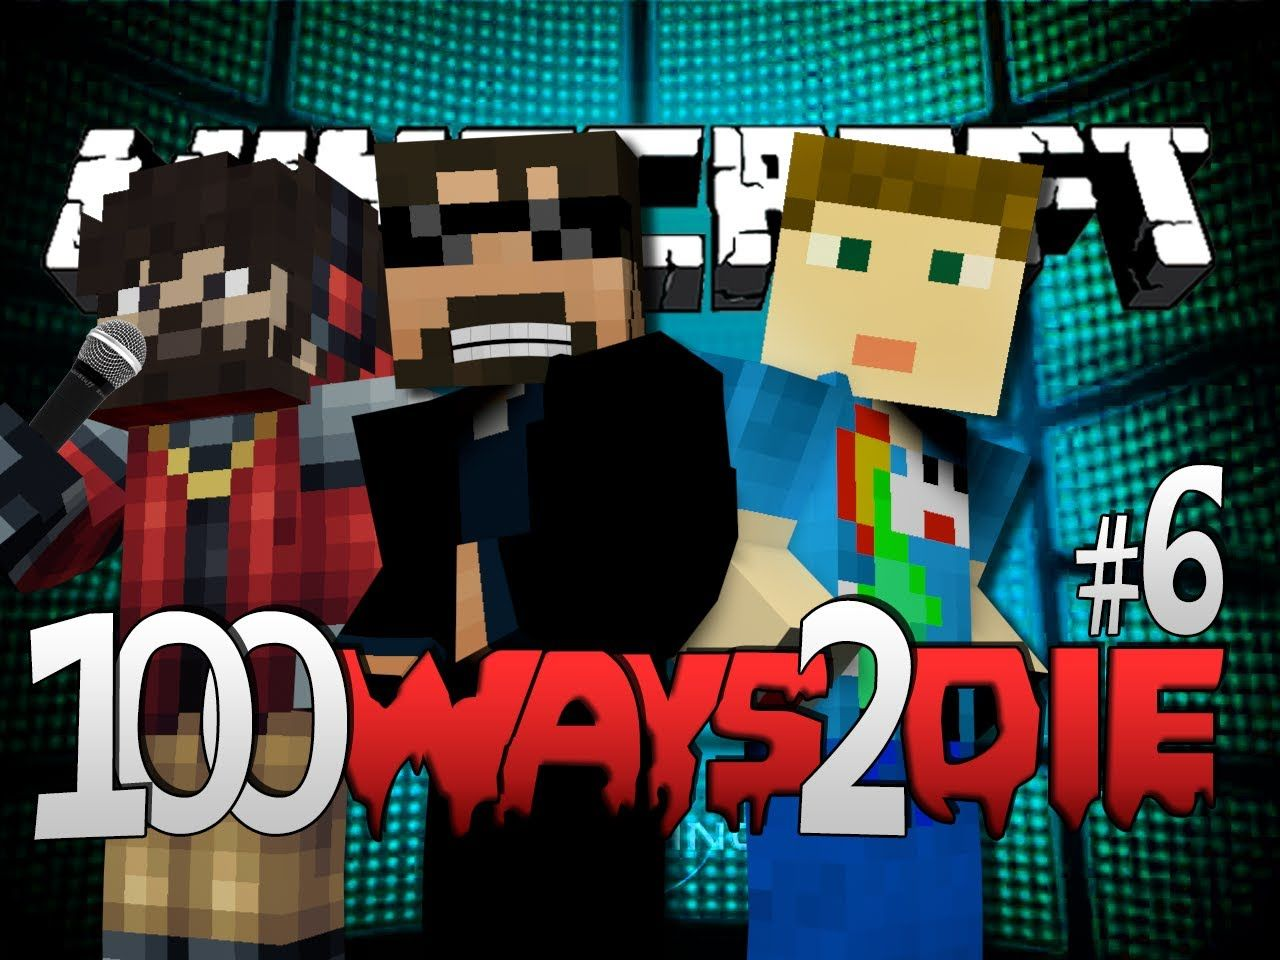 SSundee Minecraft 100 Ways To Die Duct TapeChallenge [6